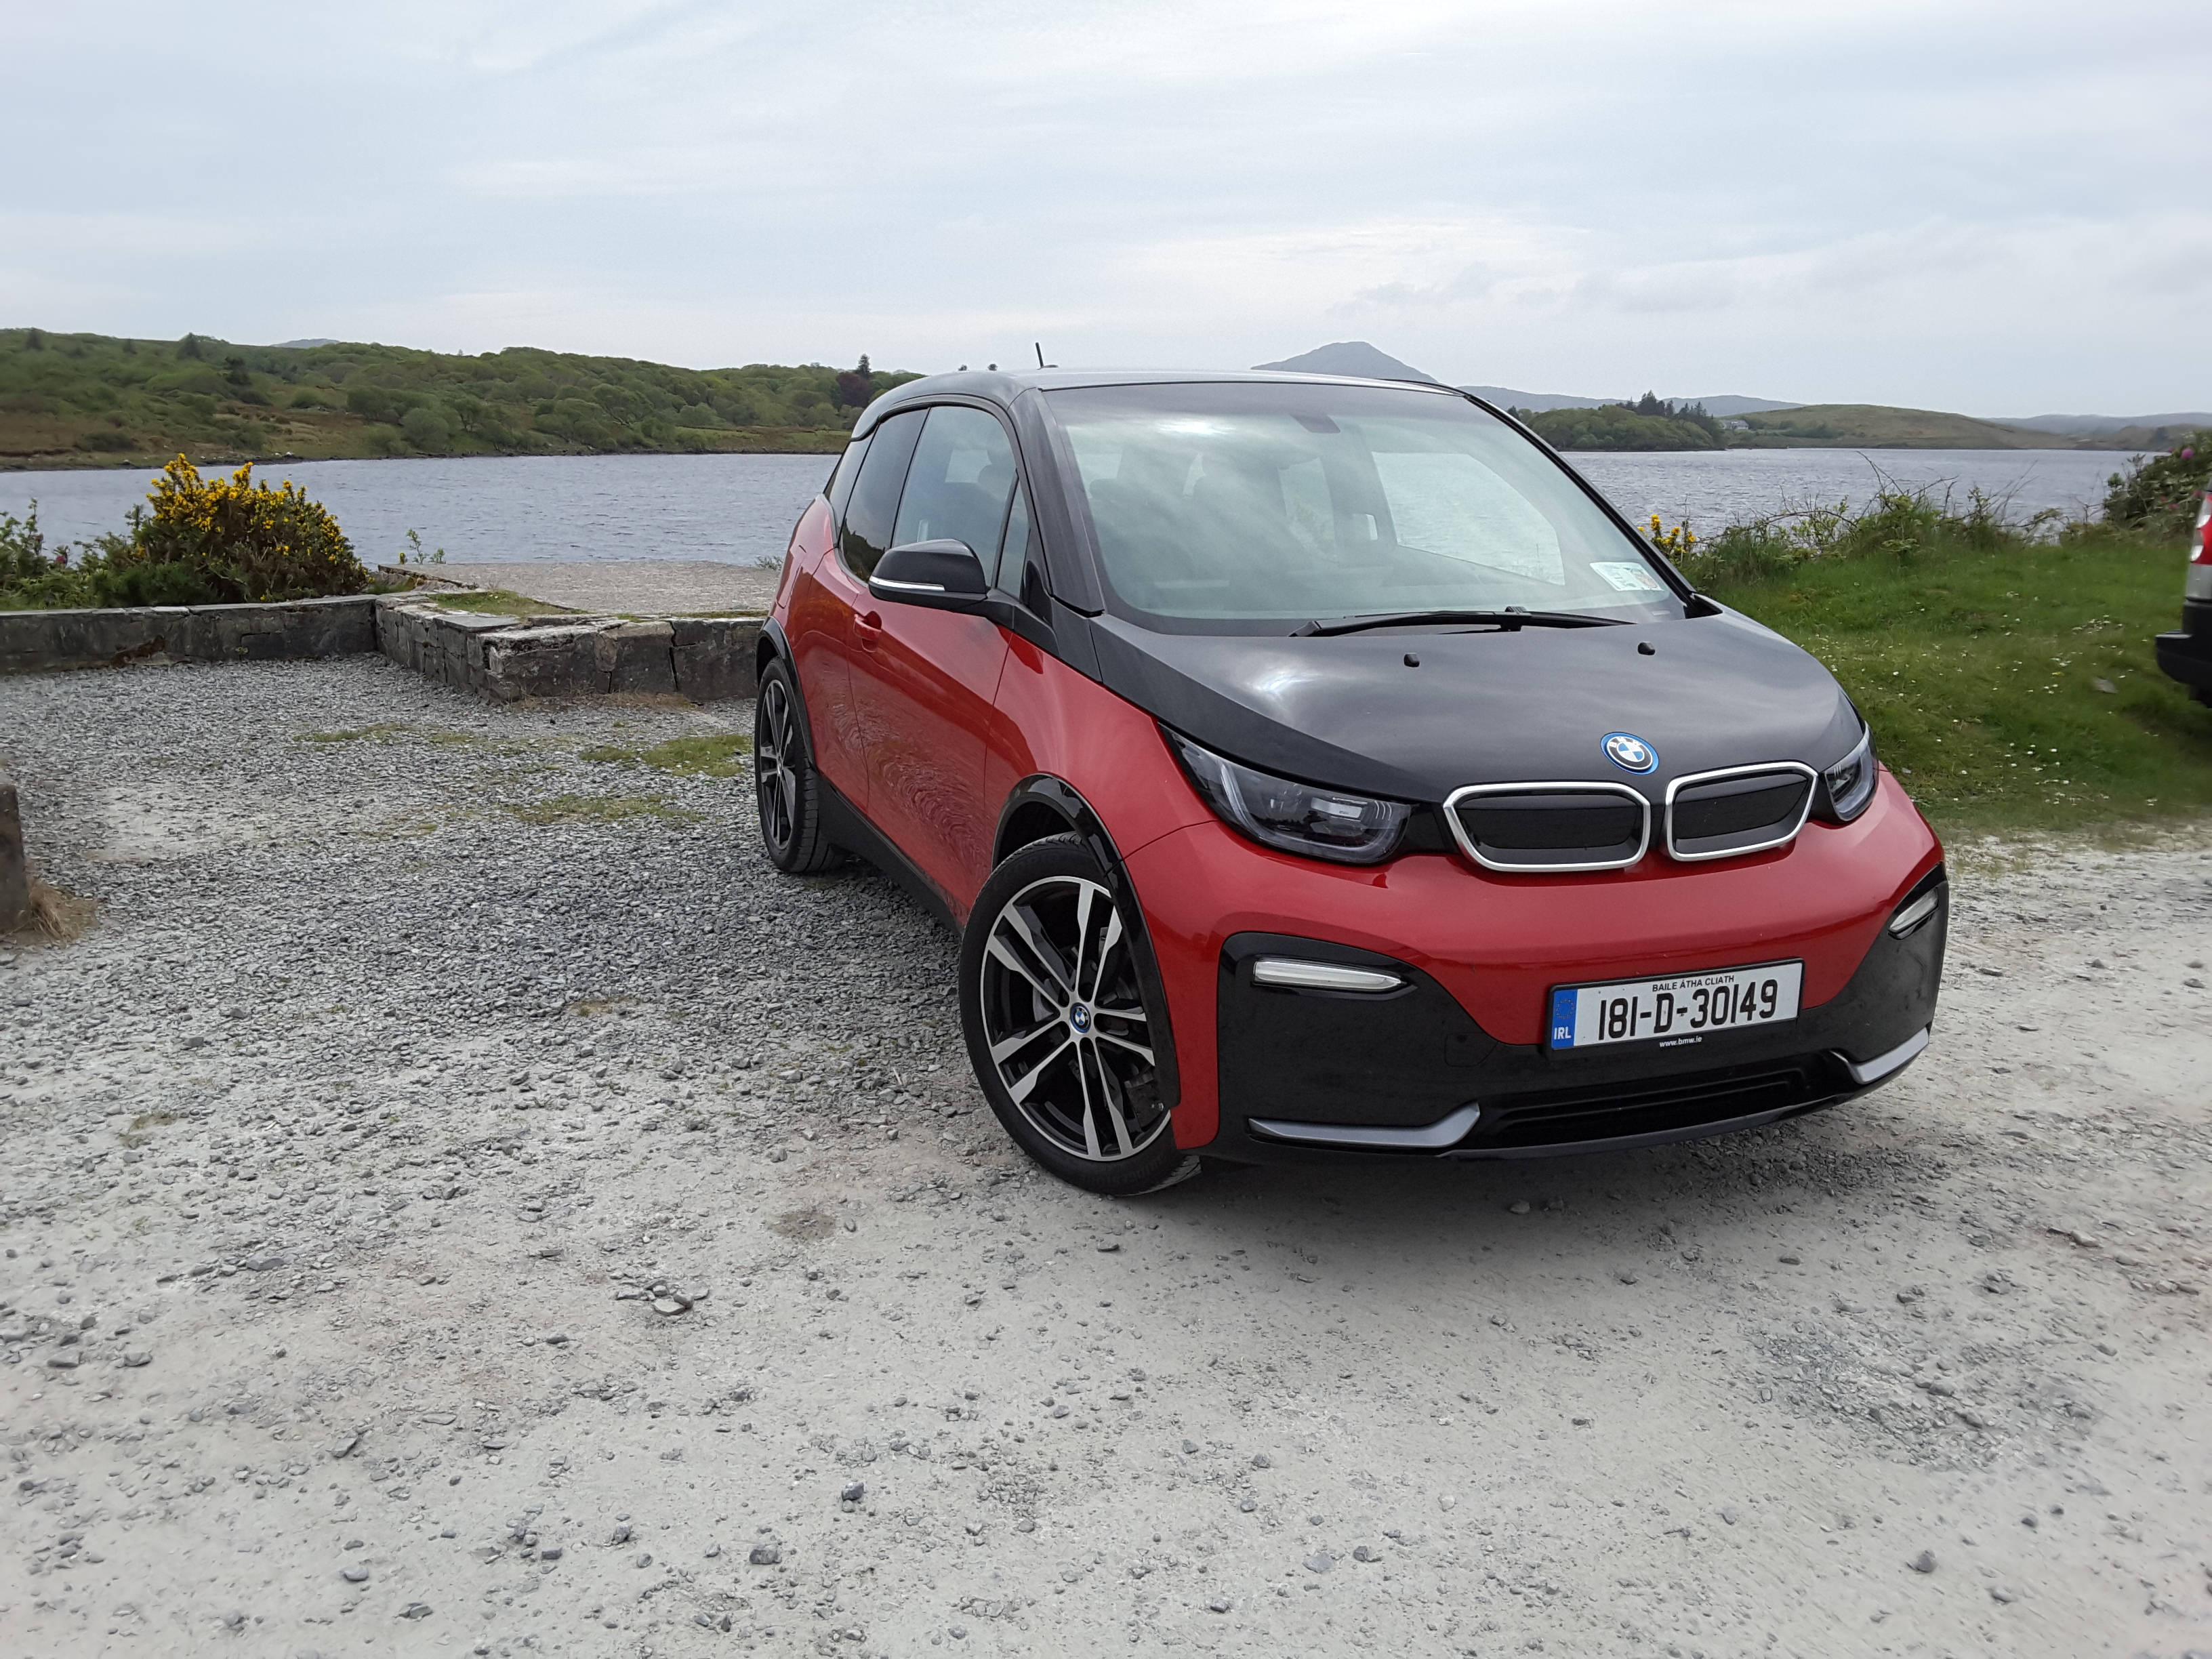 Test Drive Bmw I3s 94ah Irish Ev Owners Association